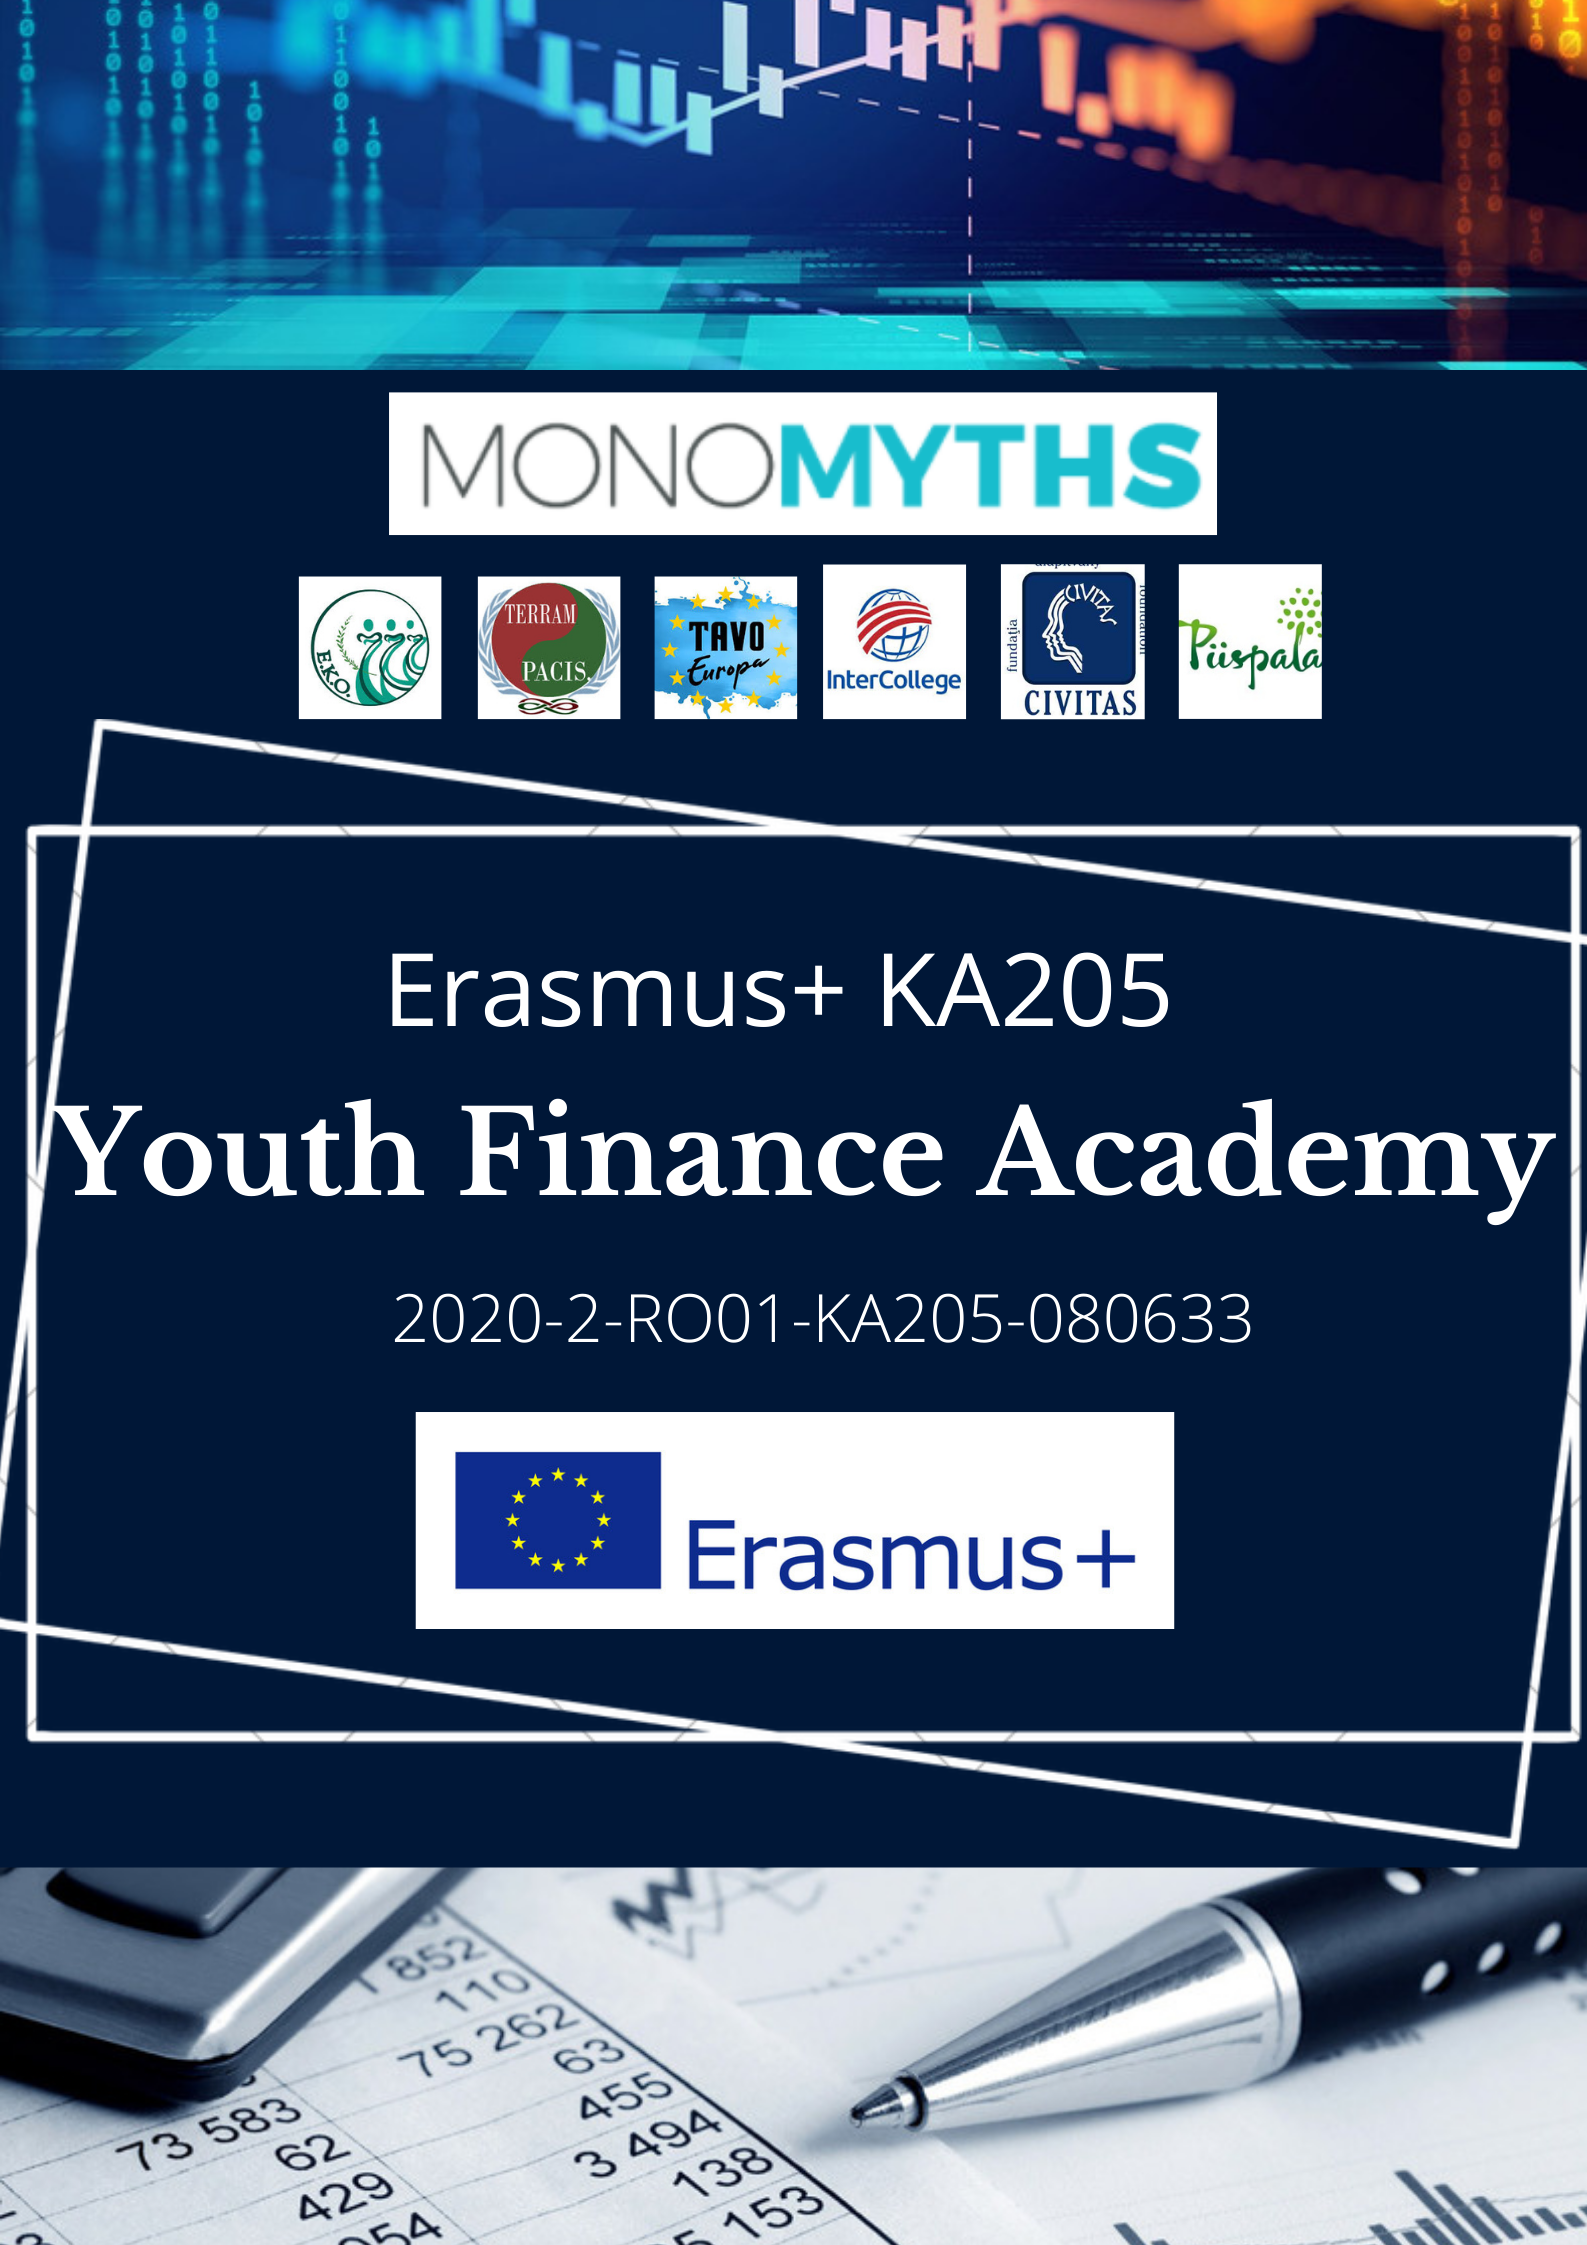 Youth Finance Academy KA205 project approved!